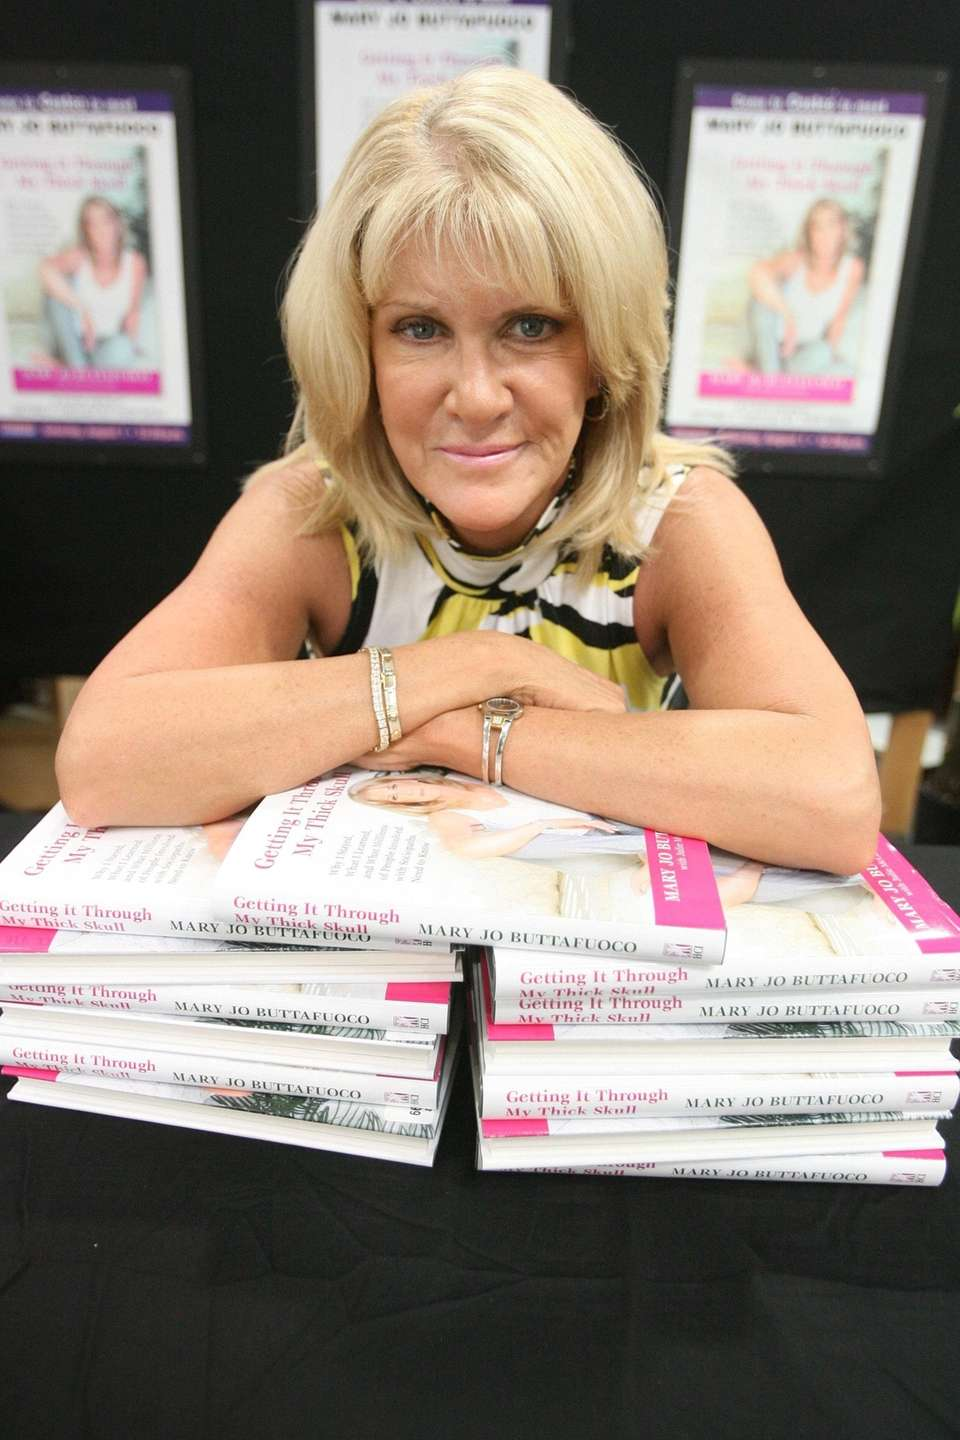 Mary Jo Buttafuoco published a book about the